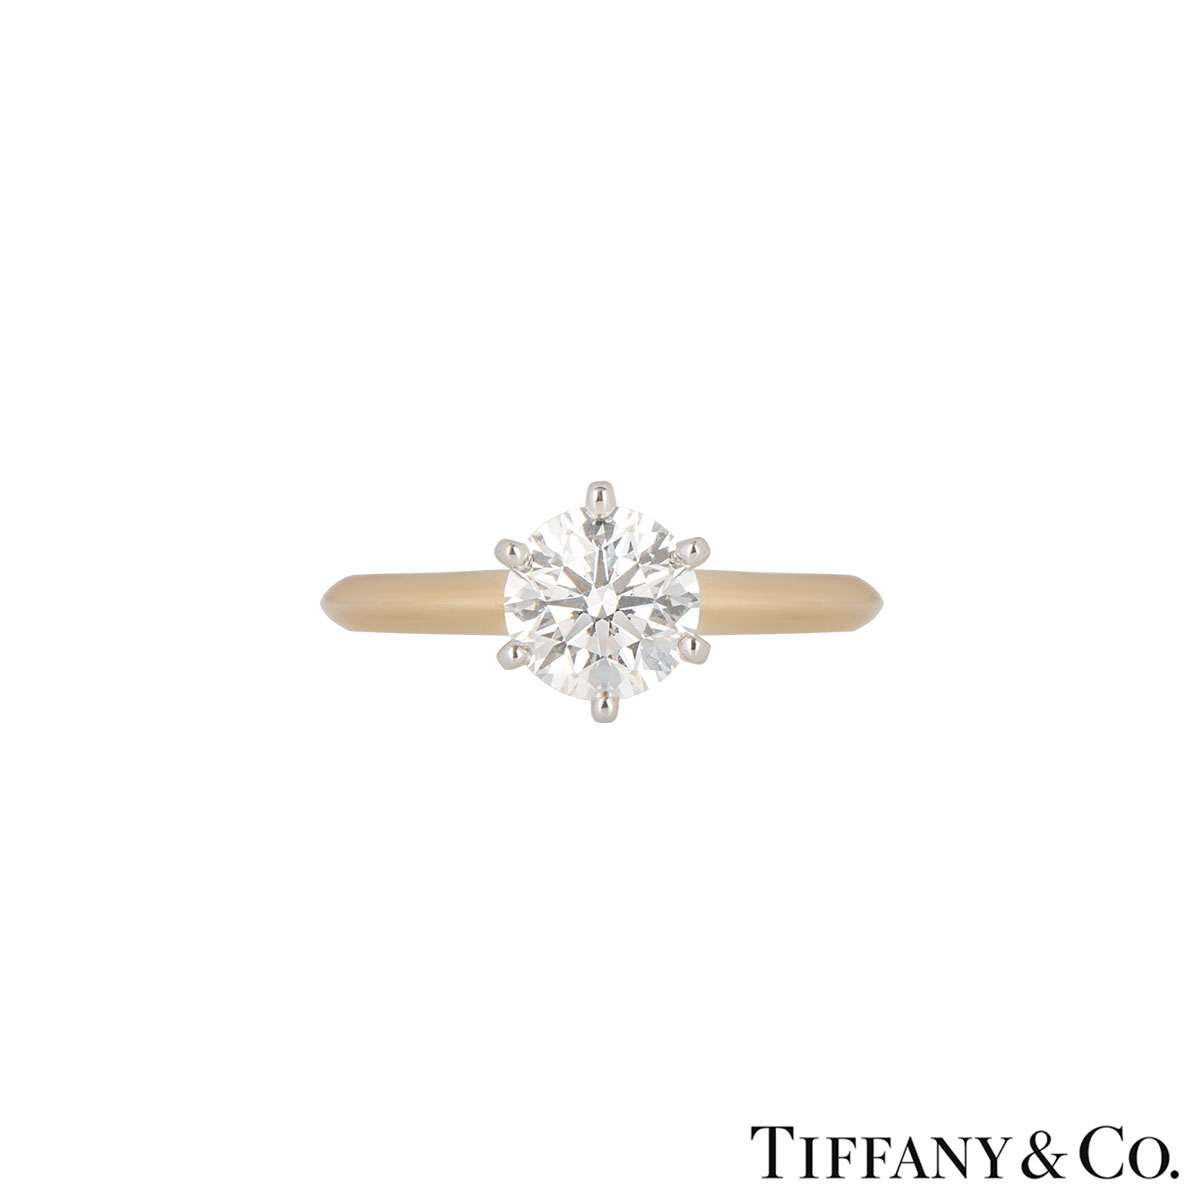 Tiffany & Co. Rose Gold Diamond Setting Ring 0.95ct H/VS1 XXX